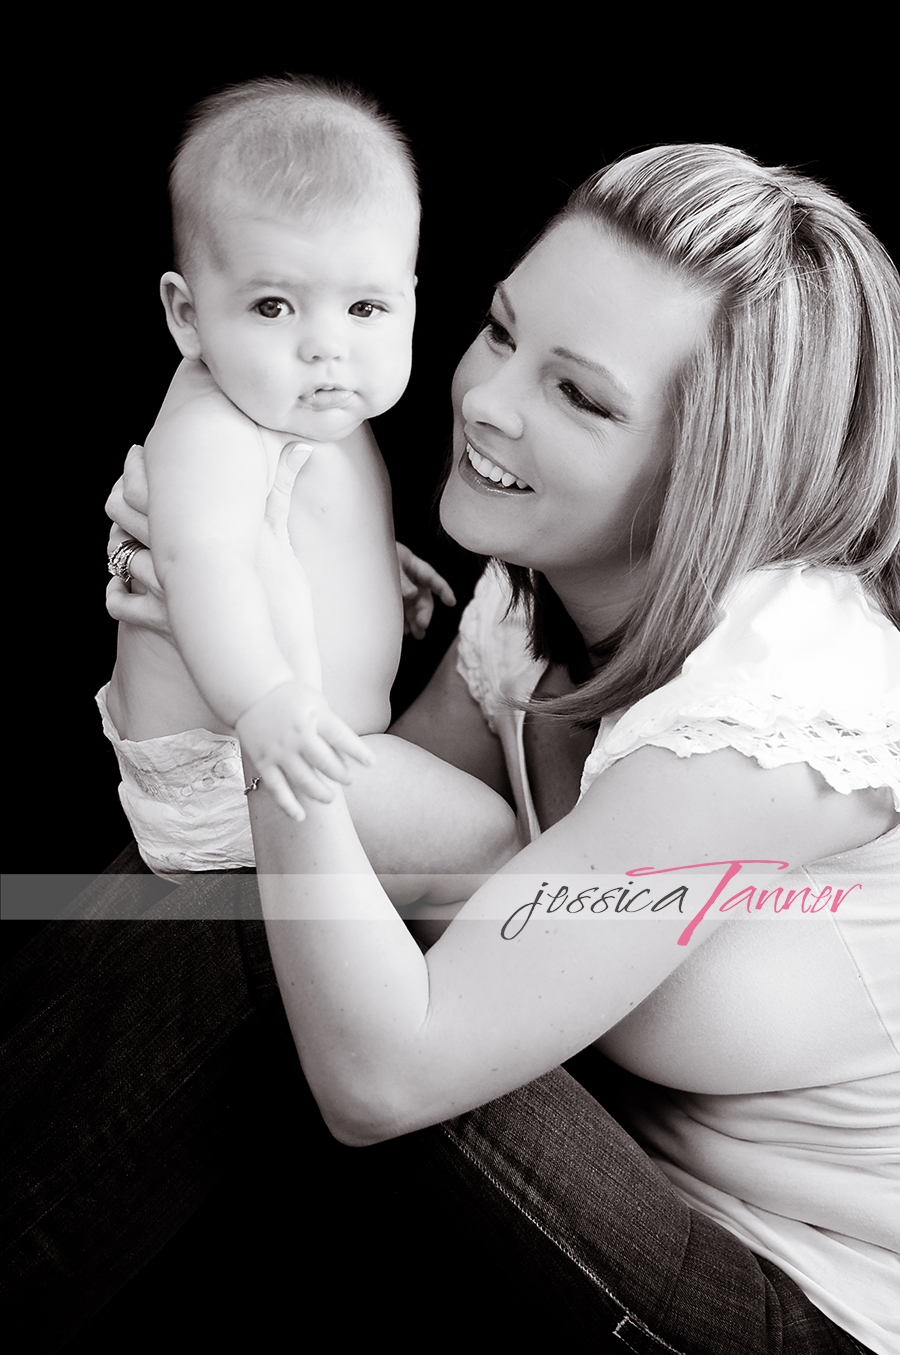 professional baby photographer in atlanta georgia - jessica tanner photography (3)